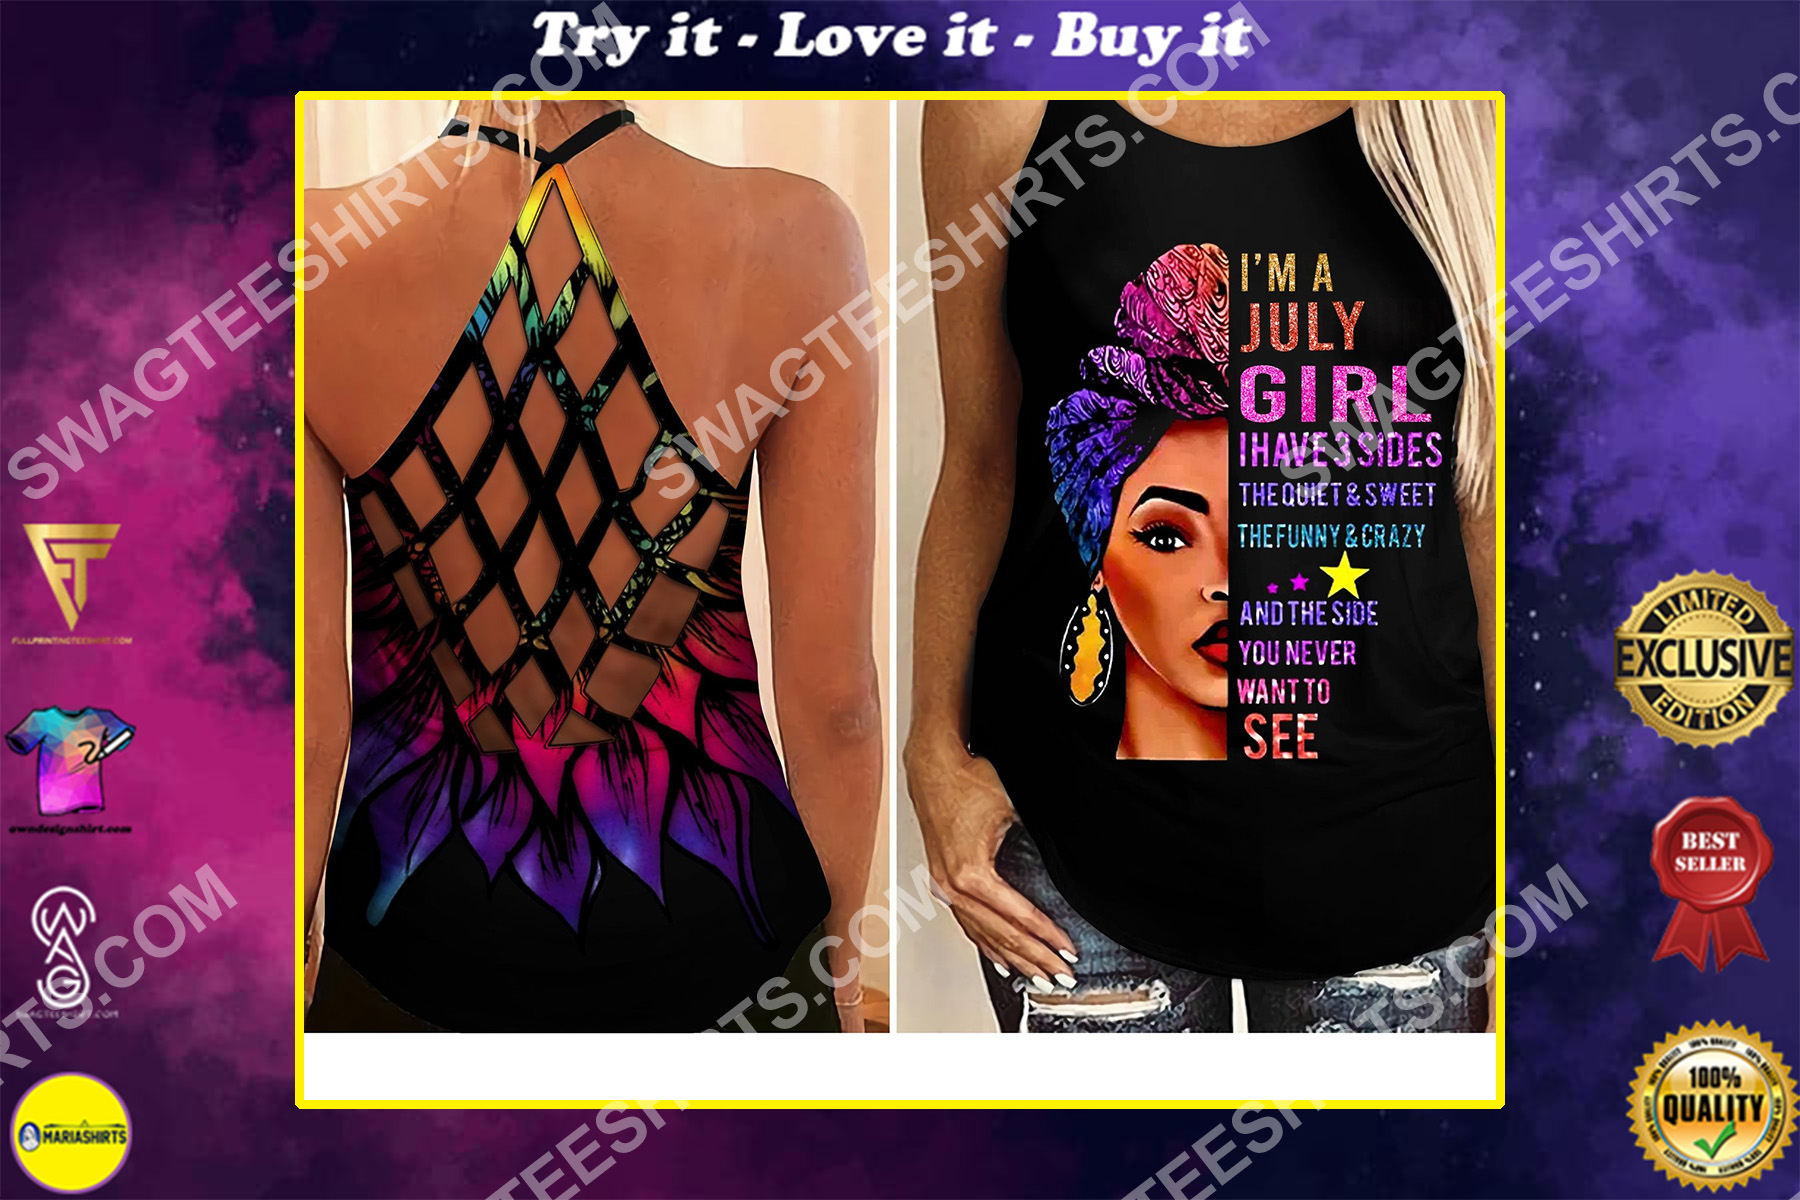 i'm a july girl i have 3 sides the quiet and sweet all over printed criss-cross tank top